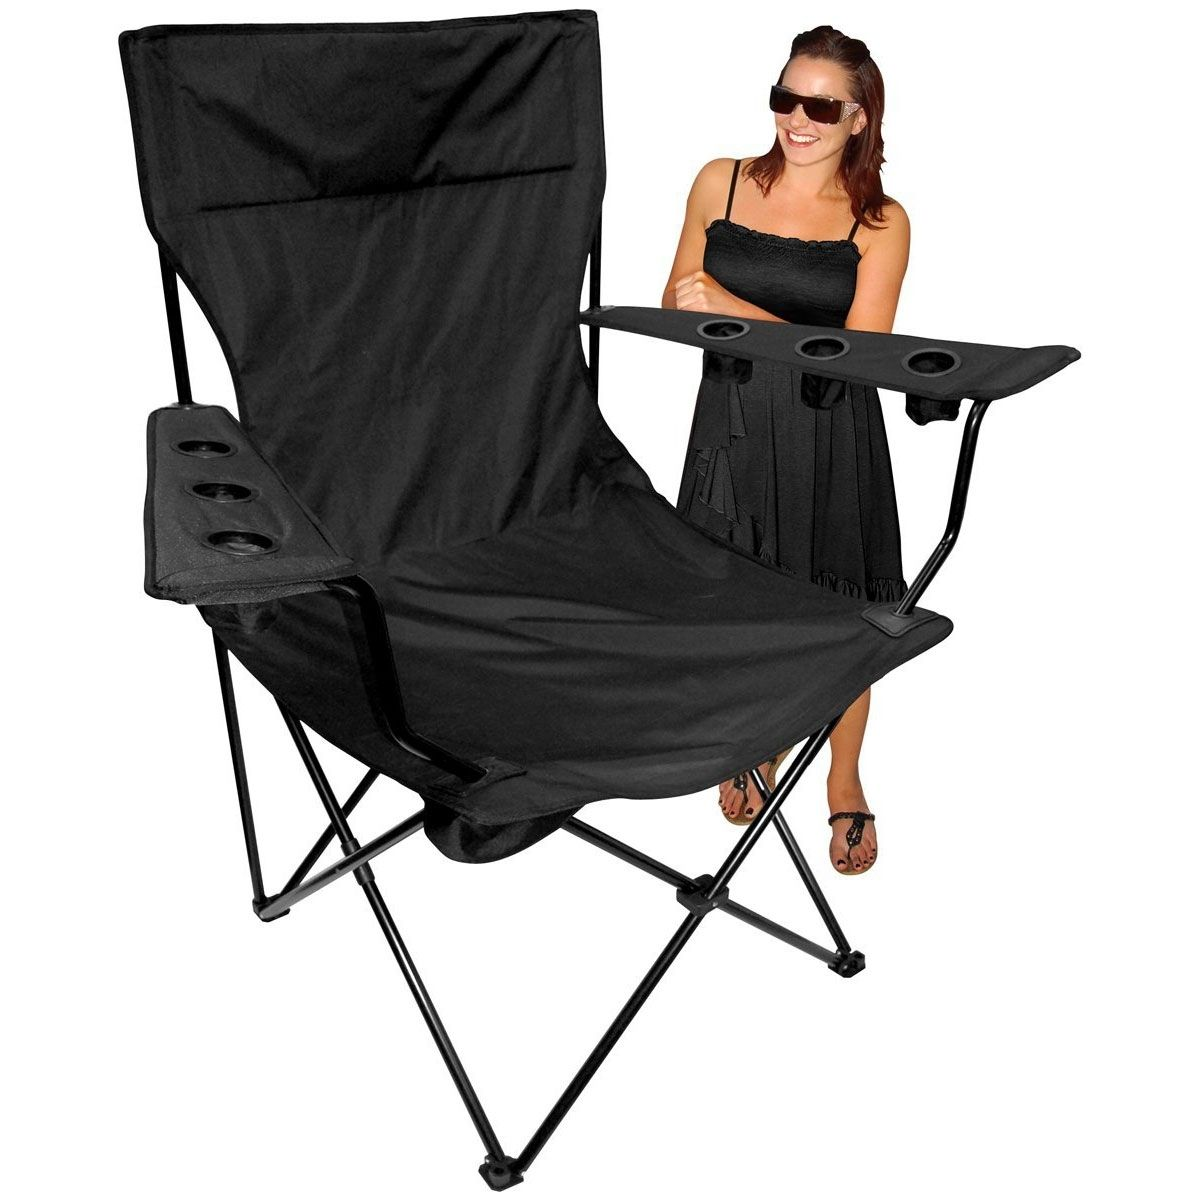 Folding camping chairs with footrest - Big And Tall Folding Camp Chairs